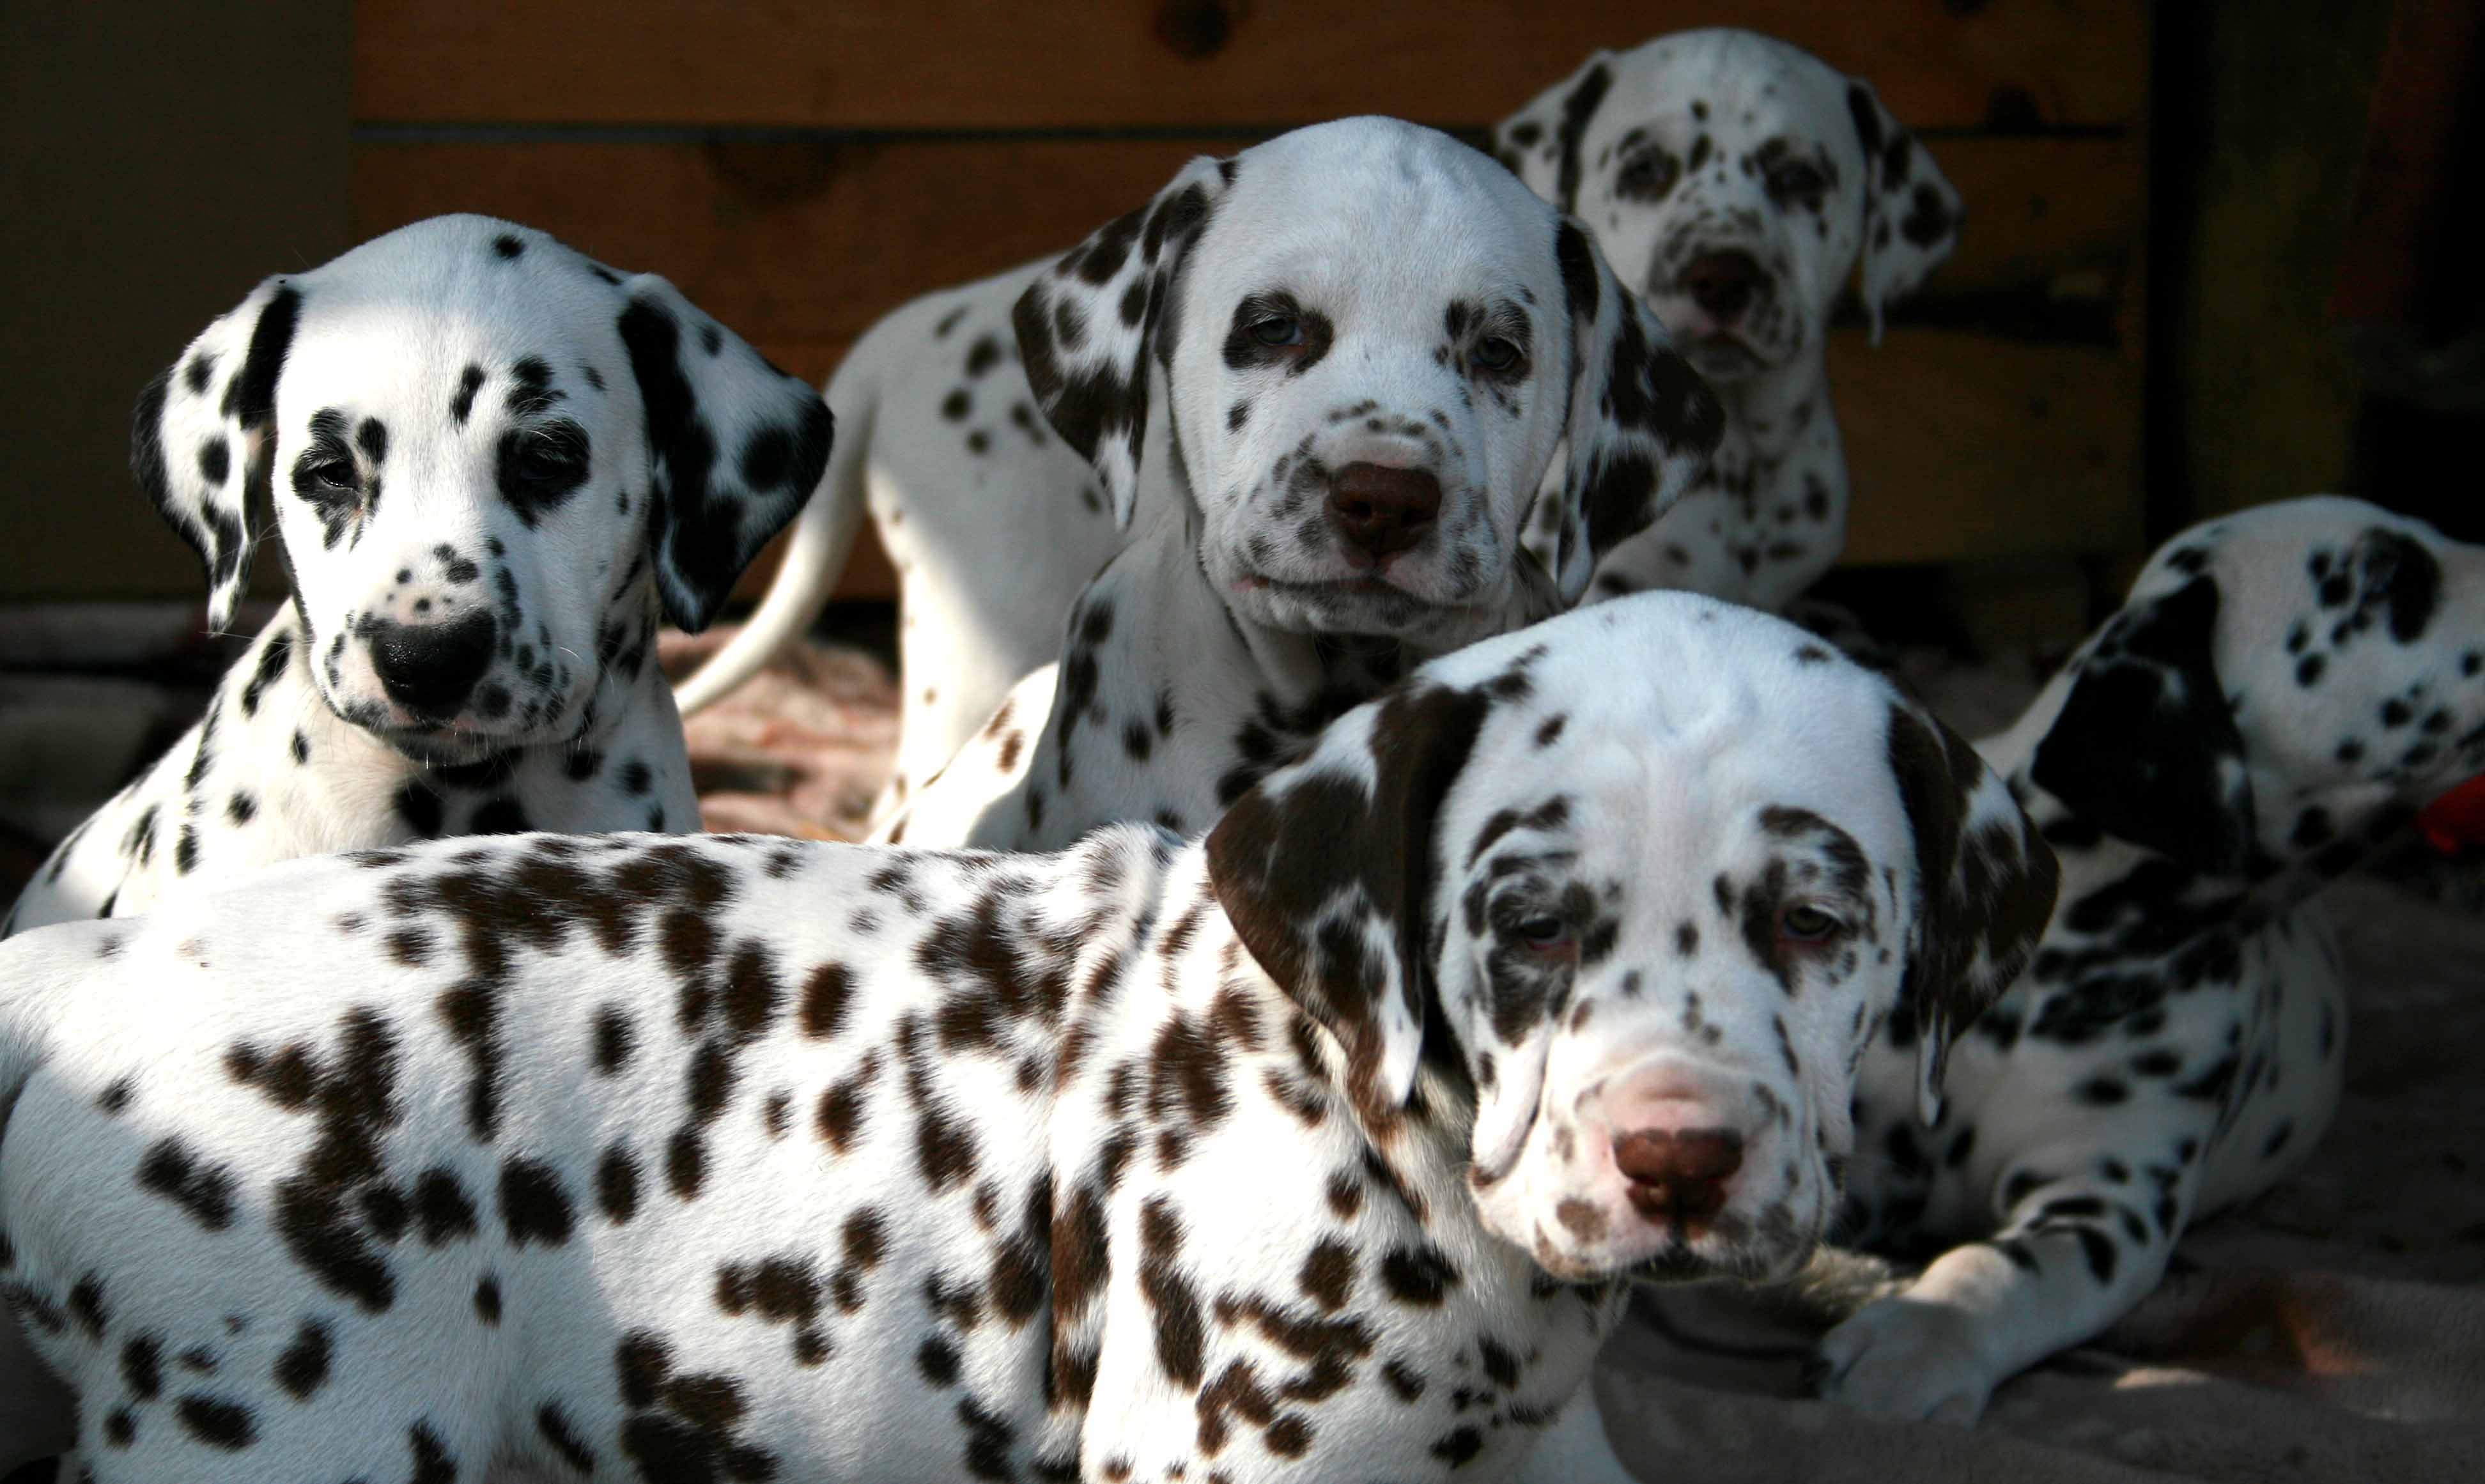 Image for post 'Dalmatian puppies (video)'